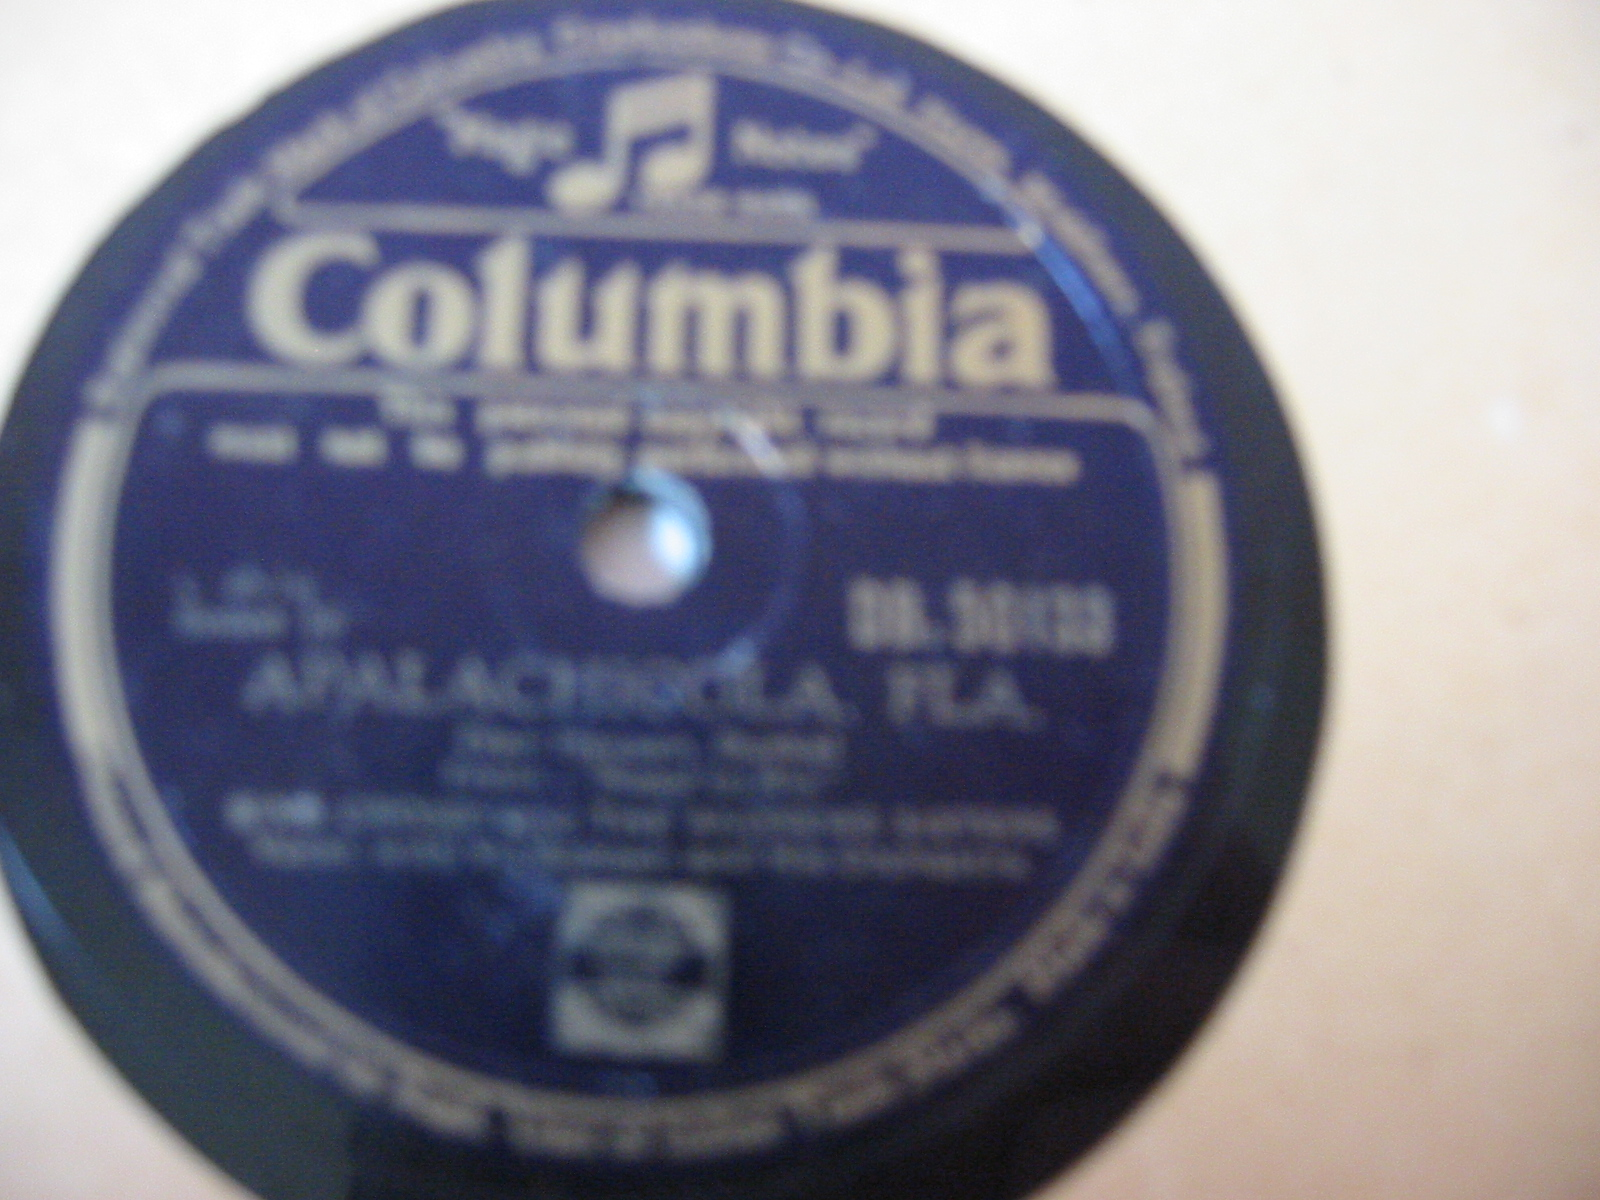 Bing Crosby & Andrews Sisters - Apalachicola - Columbia India